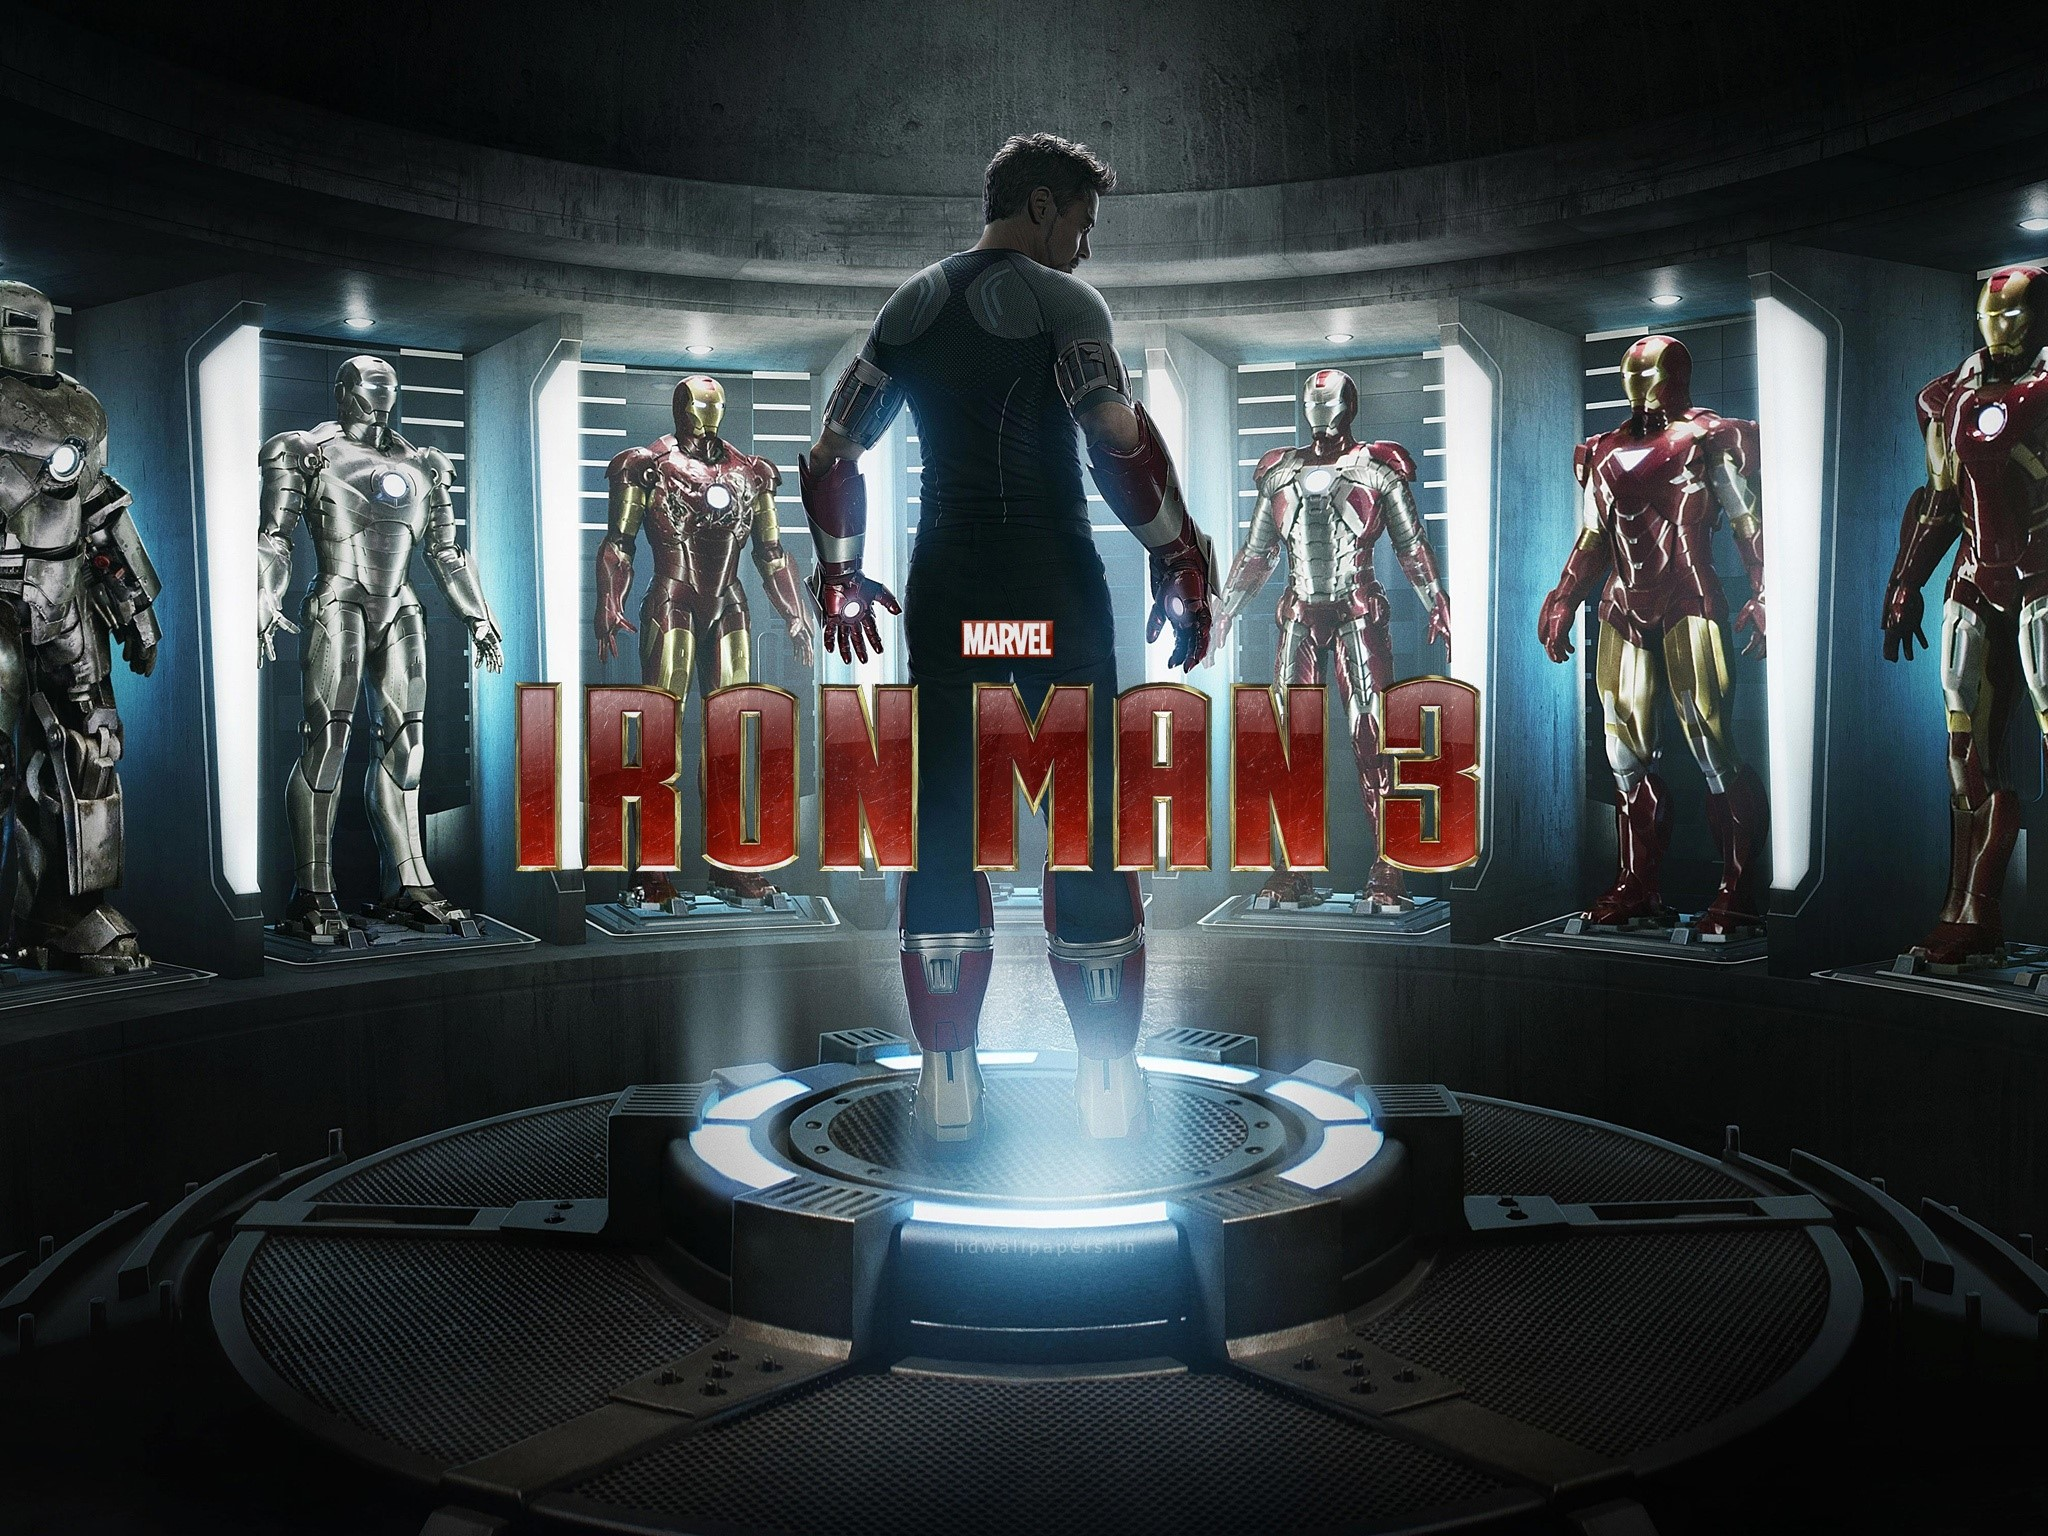 Wallpaper Iron Man 3 Images